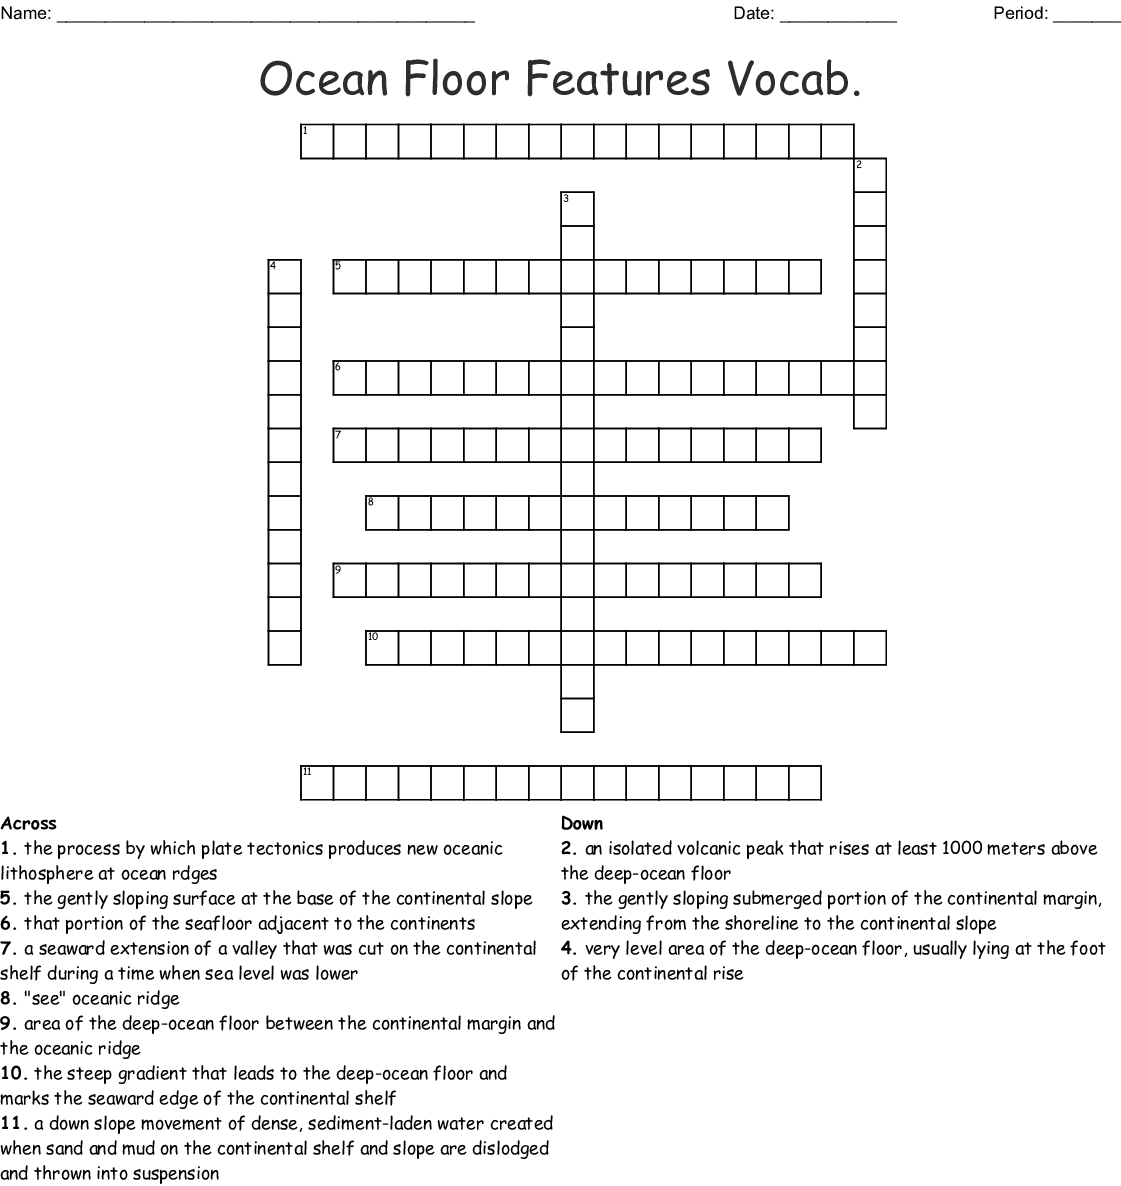 Features Of The Ocean Floor Worksheet Answers